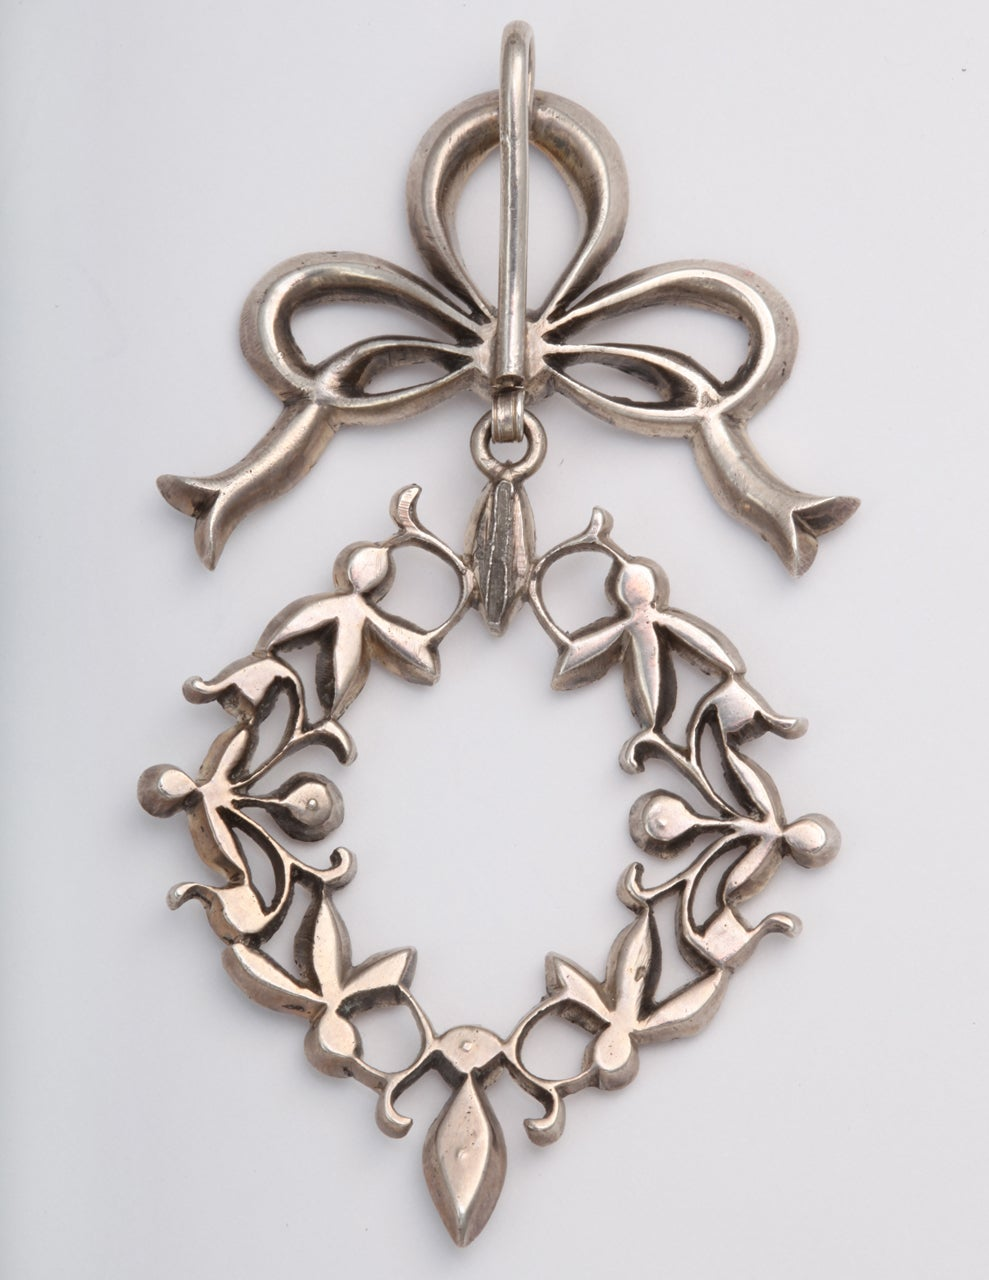 garlands and bows on a paste pendant for sale at